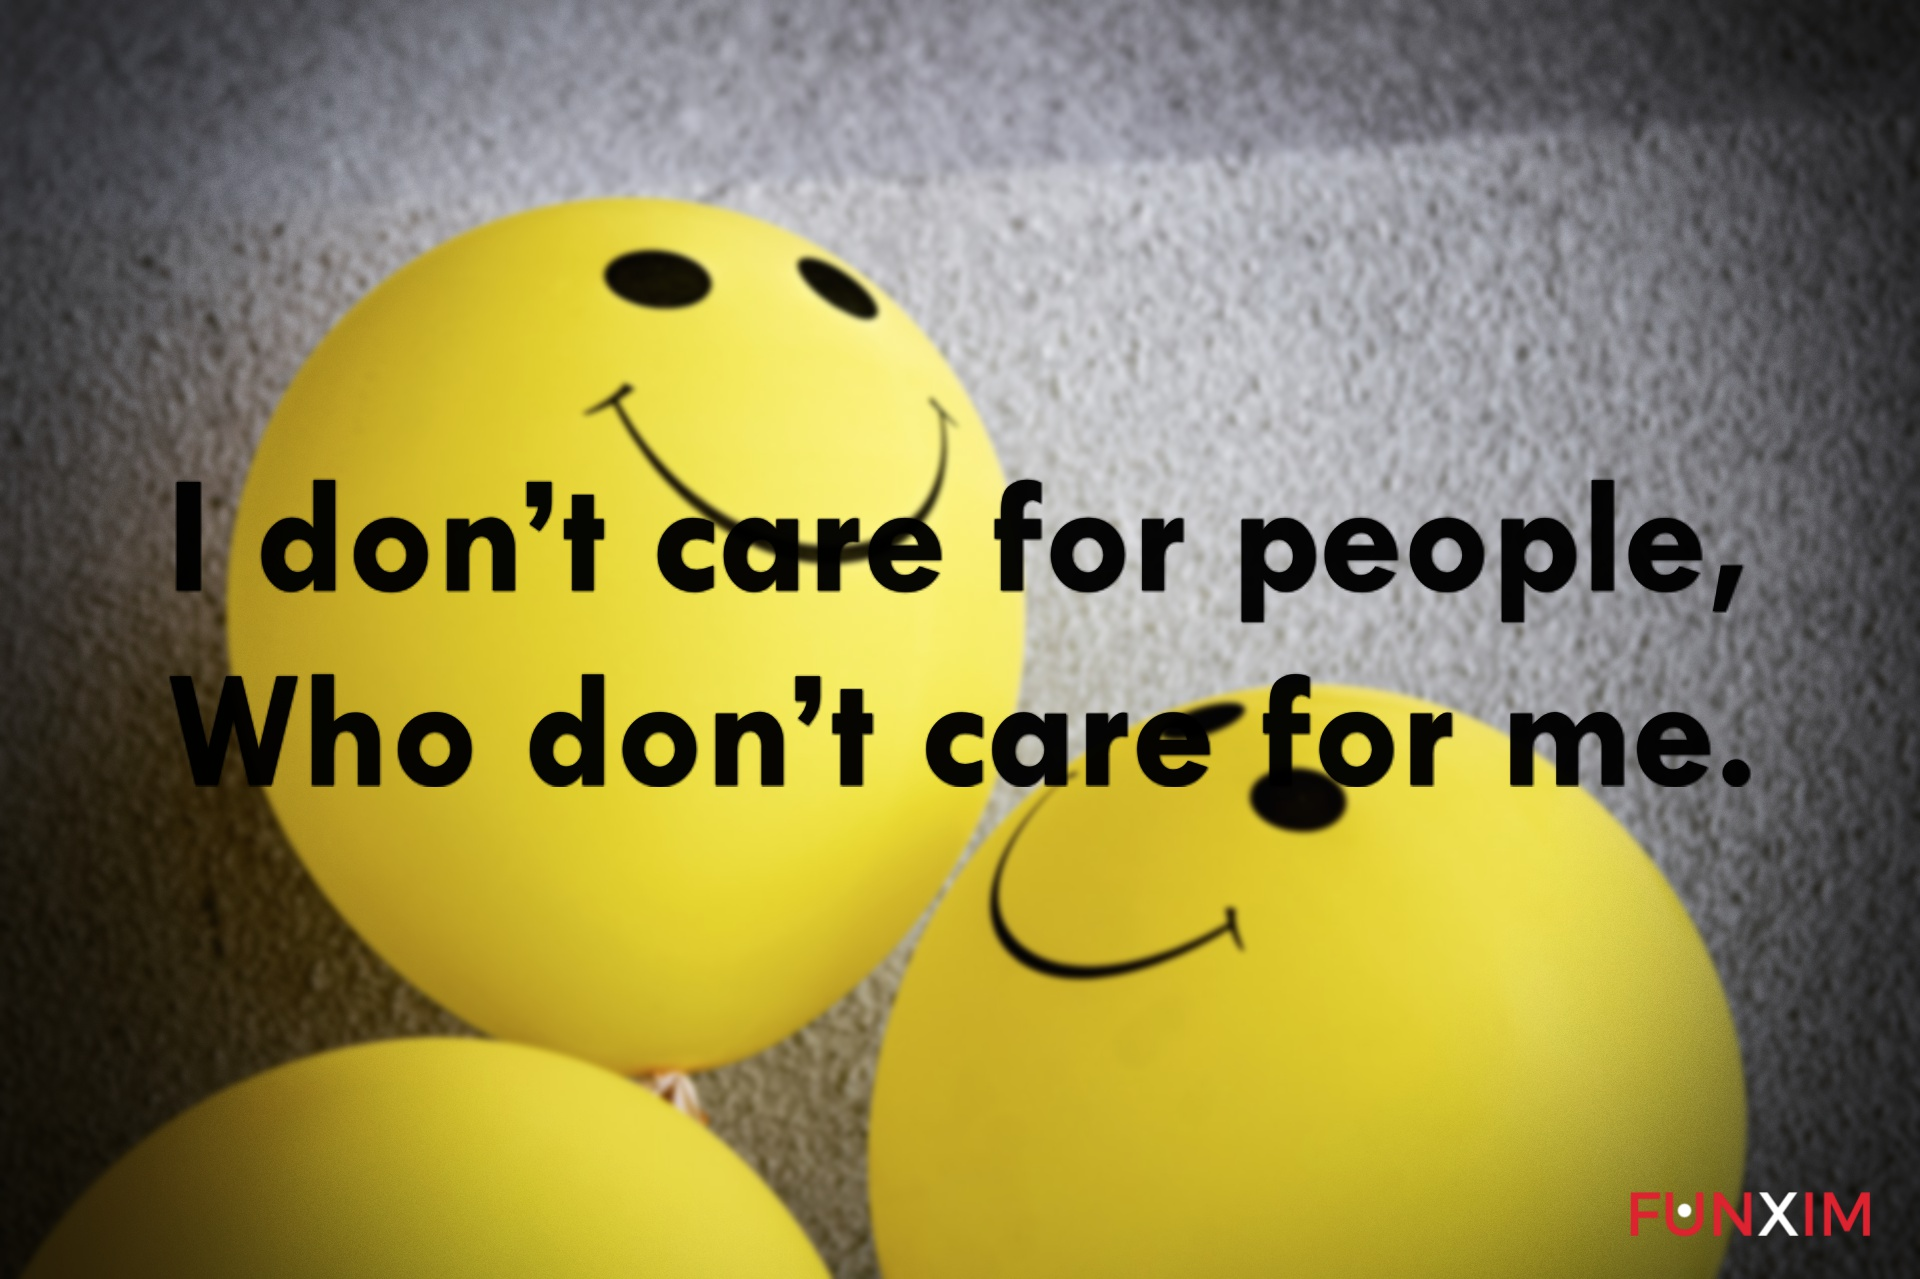 I don't care for people, who don't care for me.